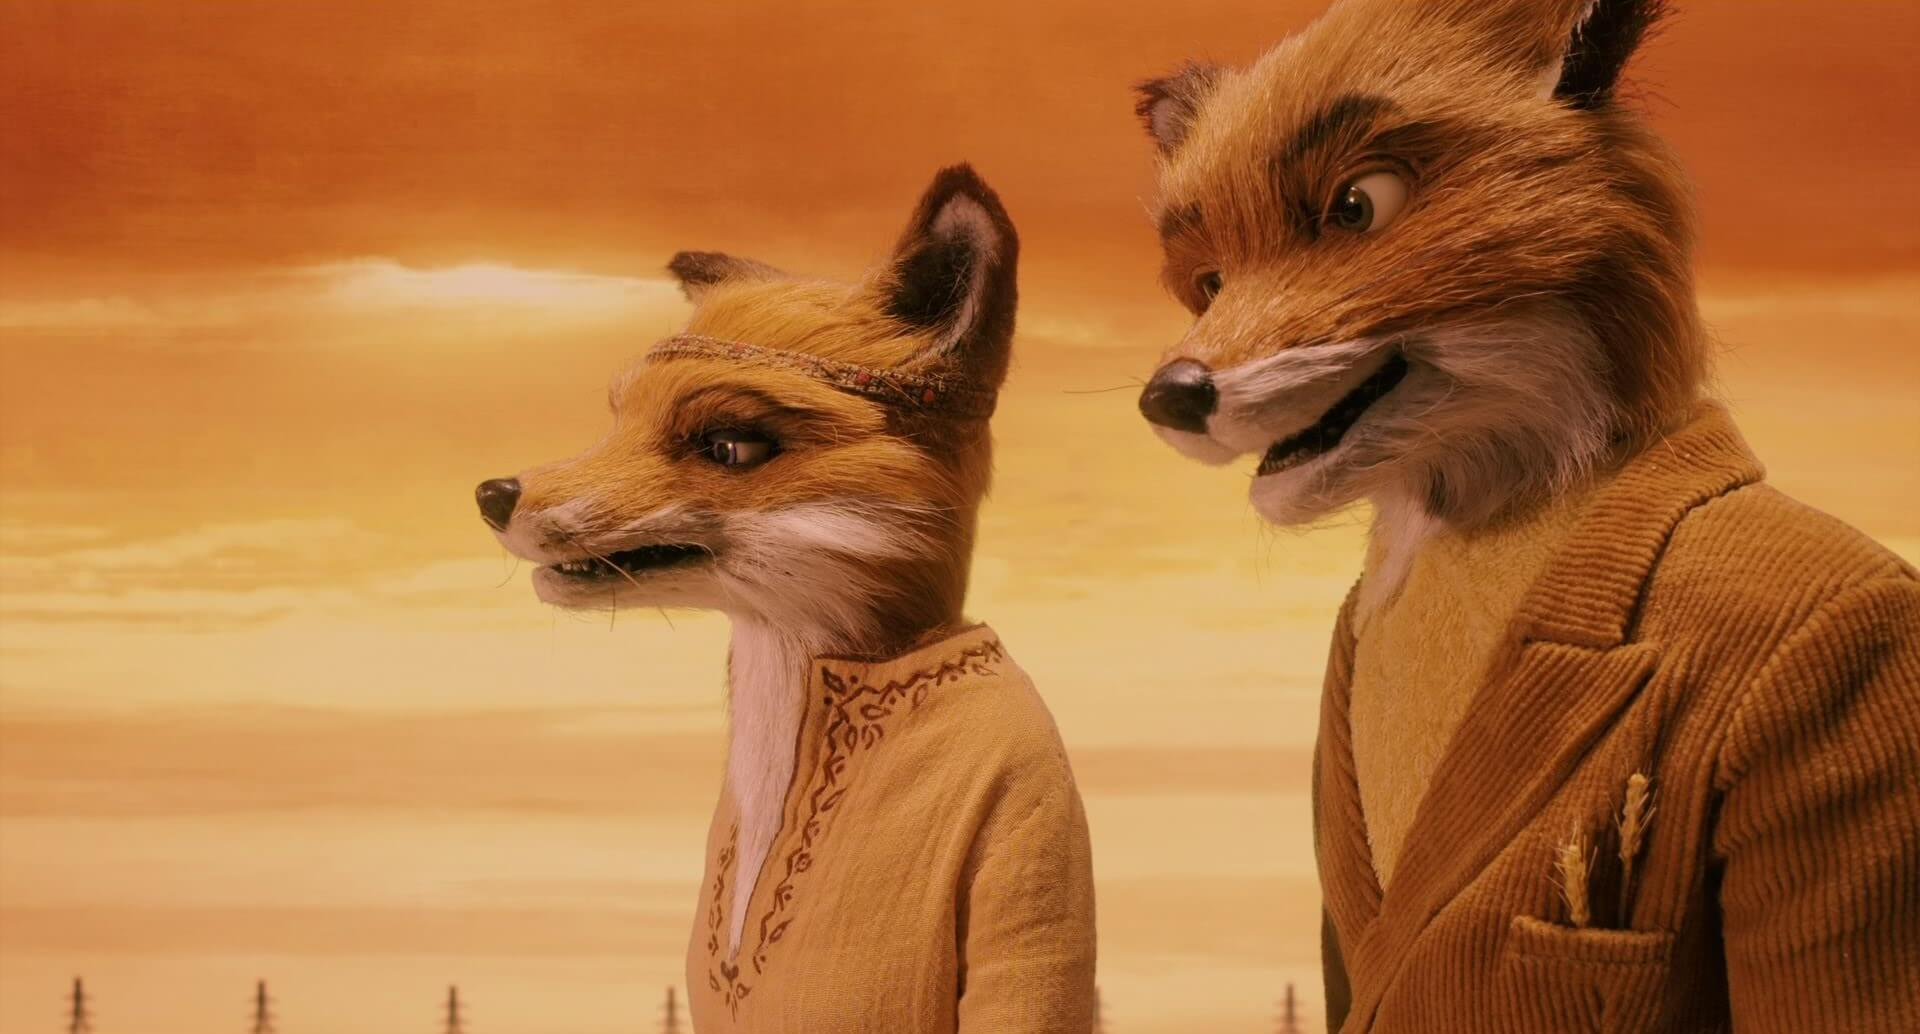 fantastic mr fox song boggis bunce and bean